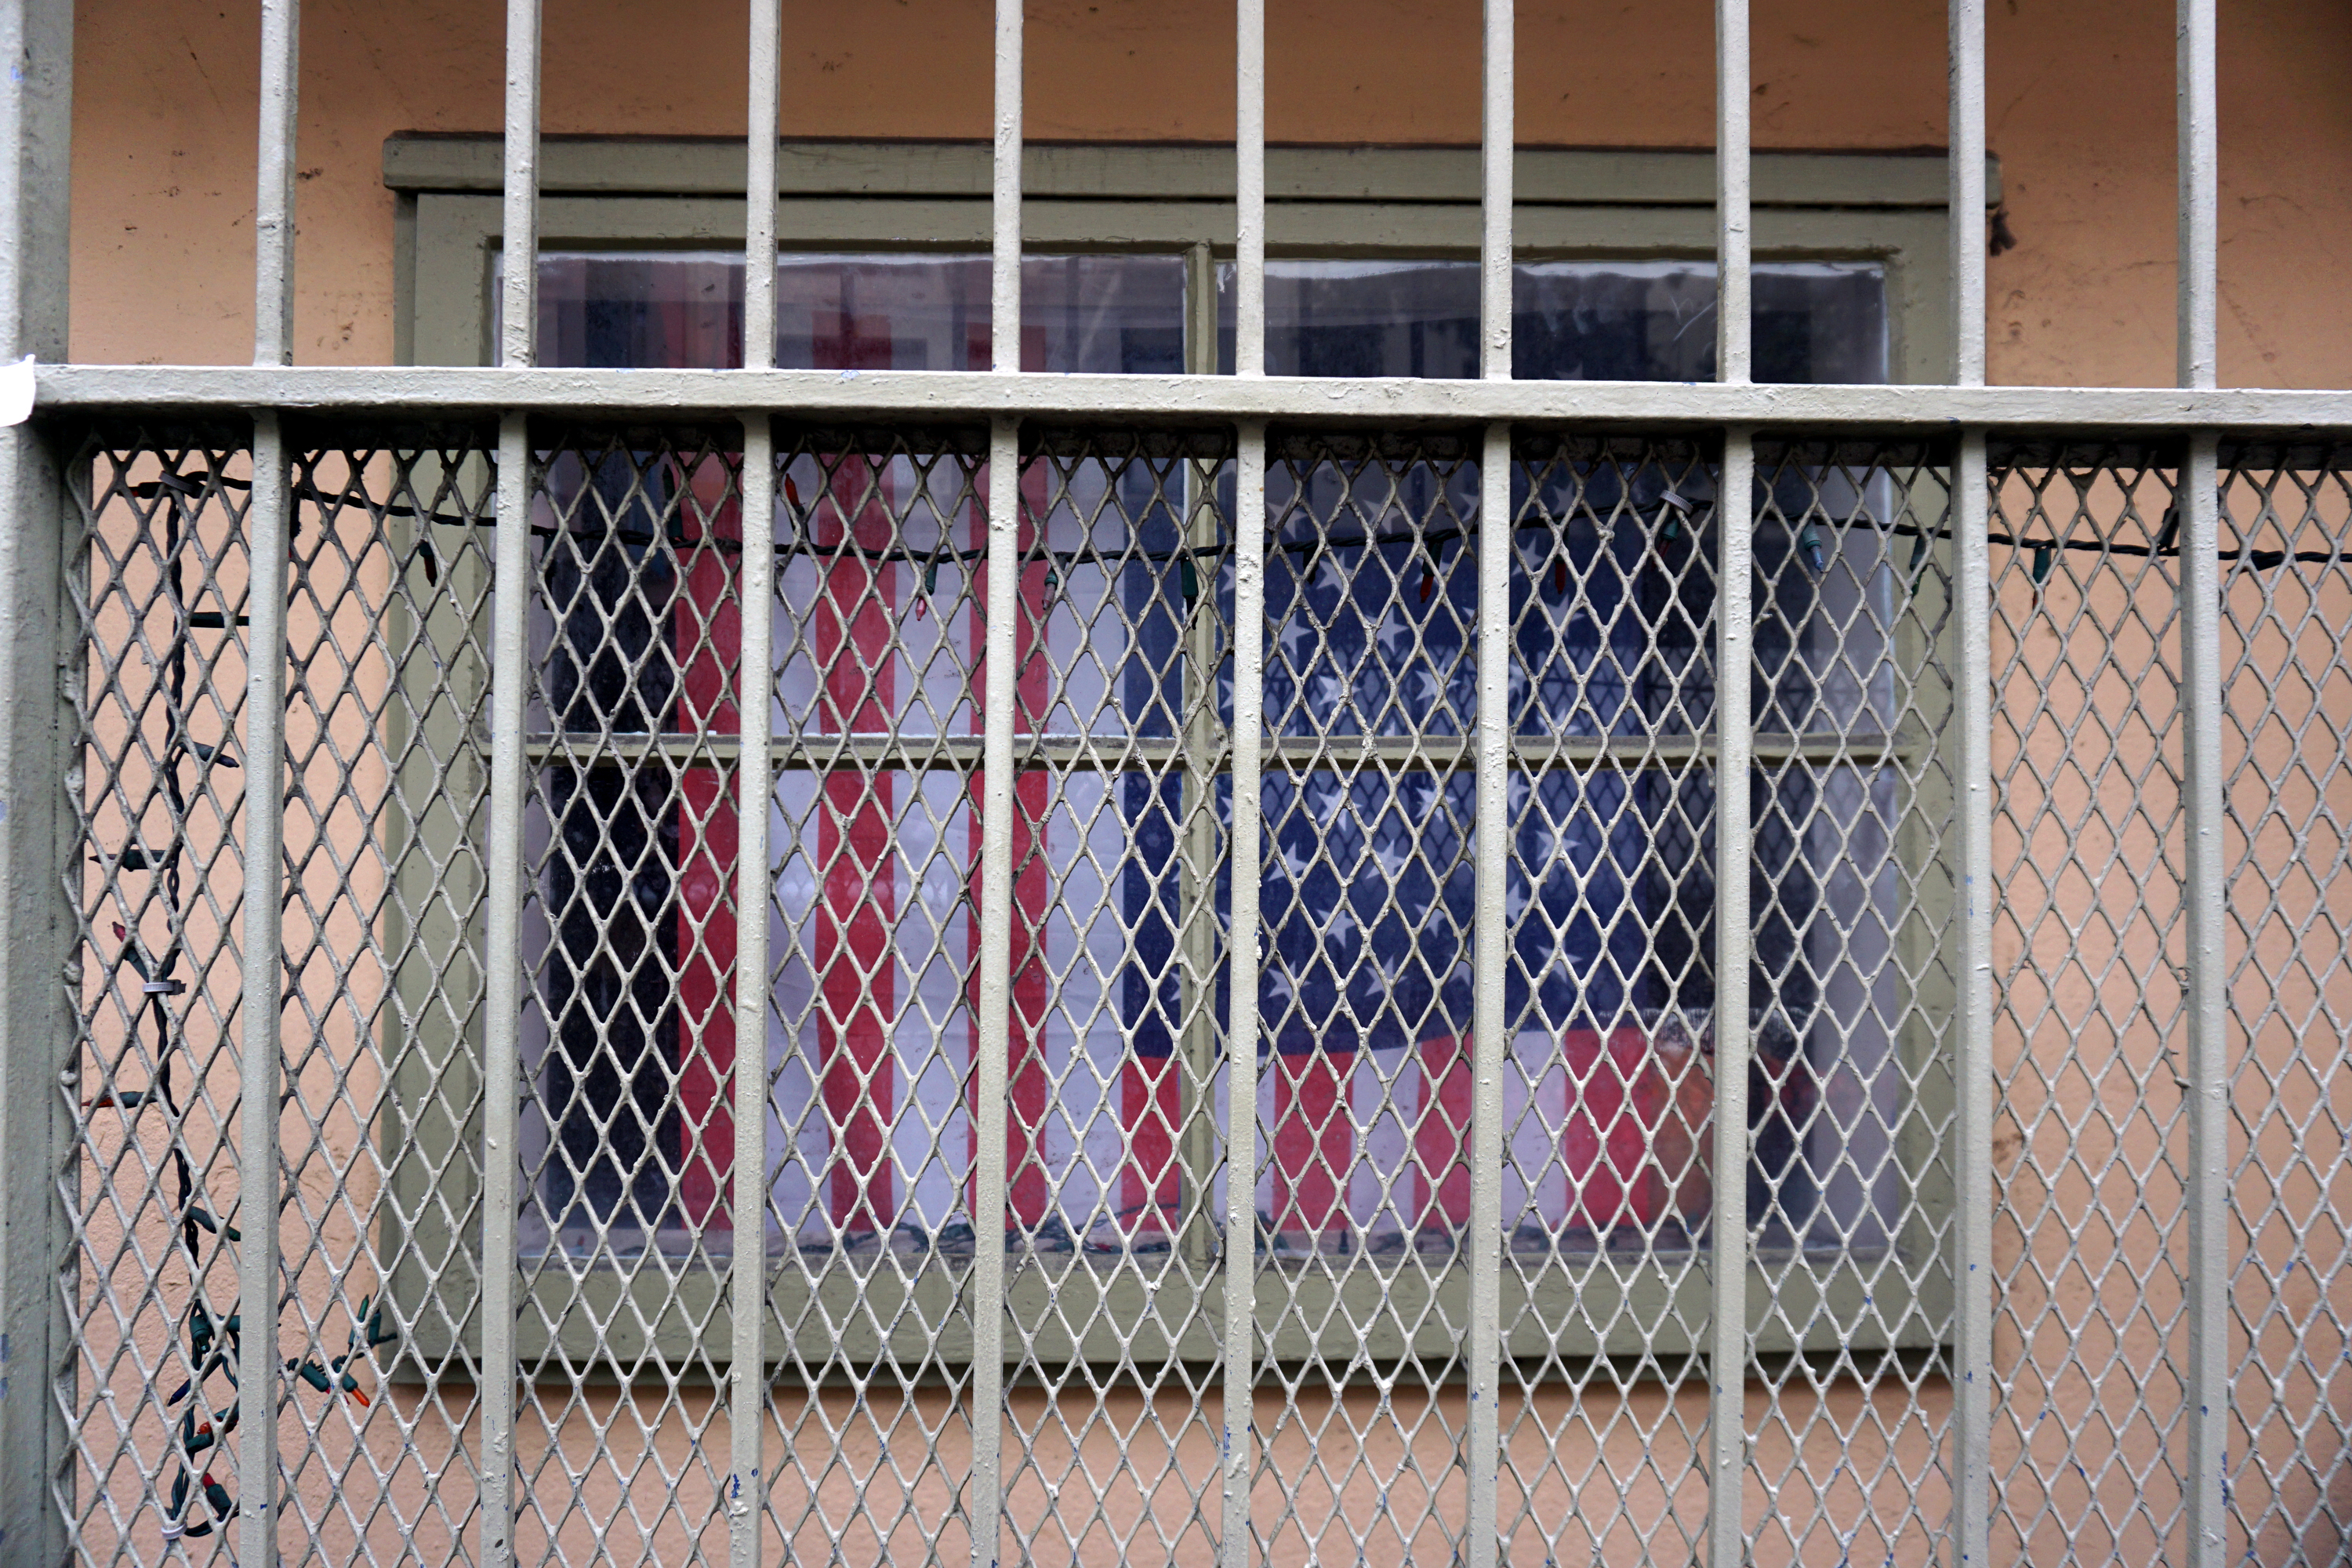 A Symposium On Mass Incarceration In The US